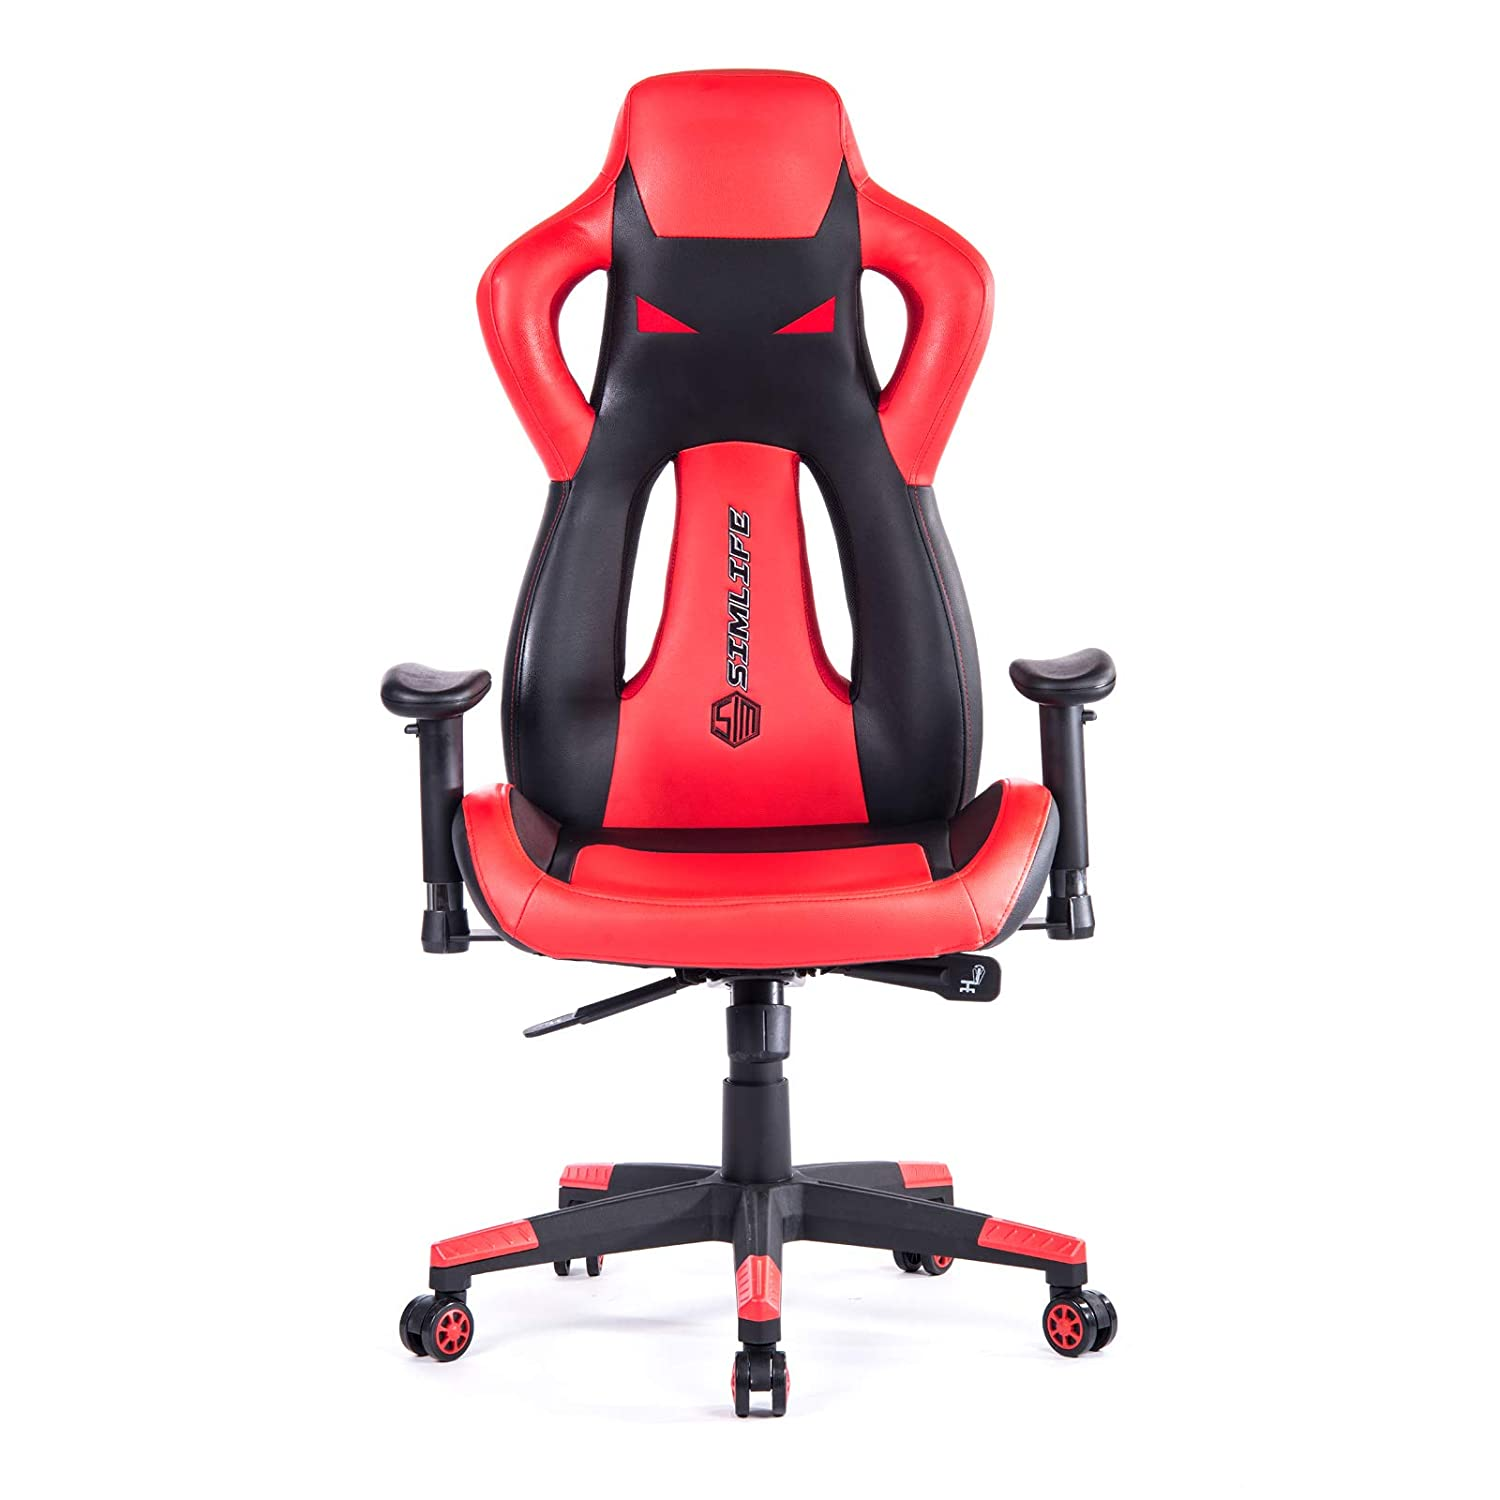 Red Gaming Computer Desk Chair,Simlife High Back Swivel Leather Executive Office Chairs Racing Style with Height and Armrest Adjustable Heavy Duty Large Gamer Chair for Adults Teens